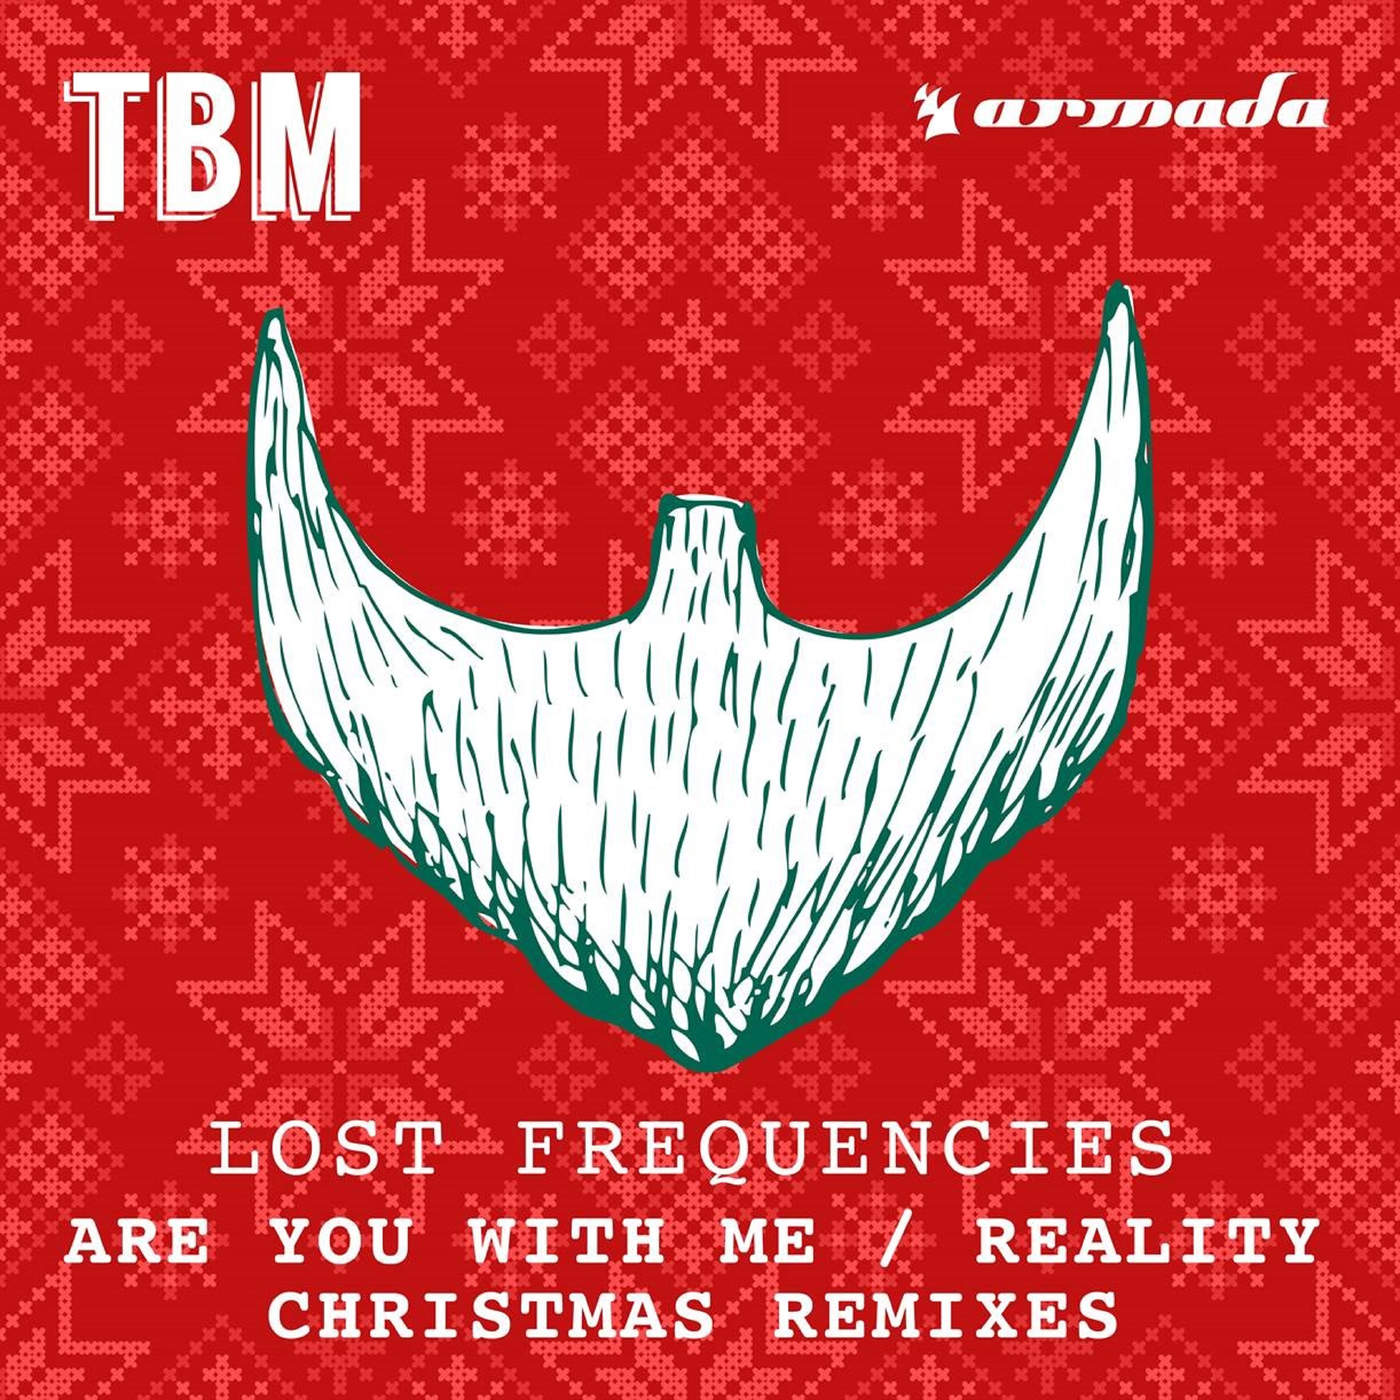 Lost Frequencies - Are You with Me / Reality (Christmas Remixes) - Single Cover